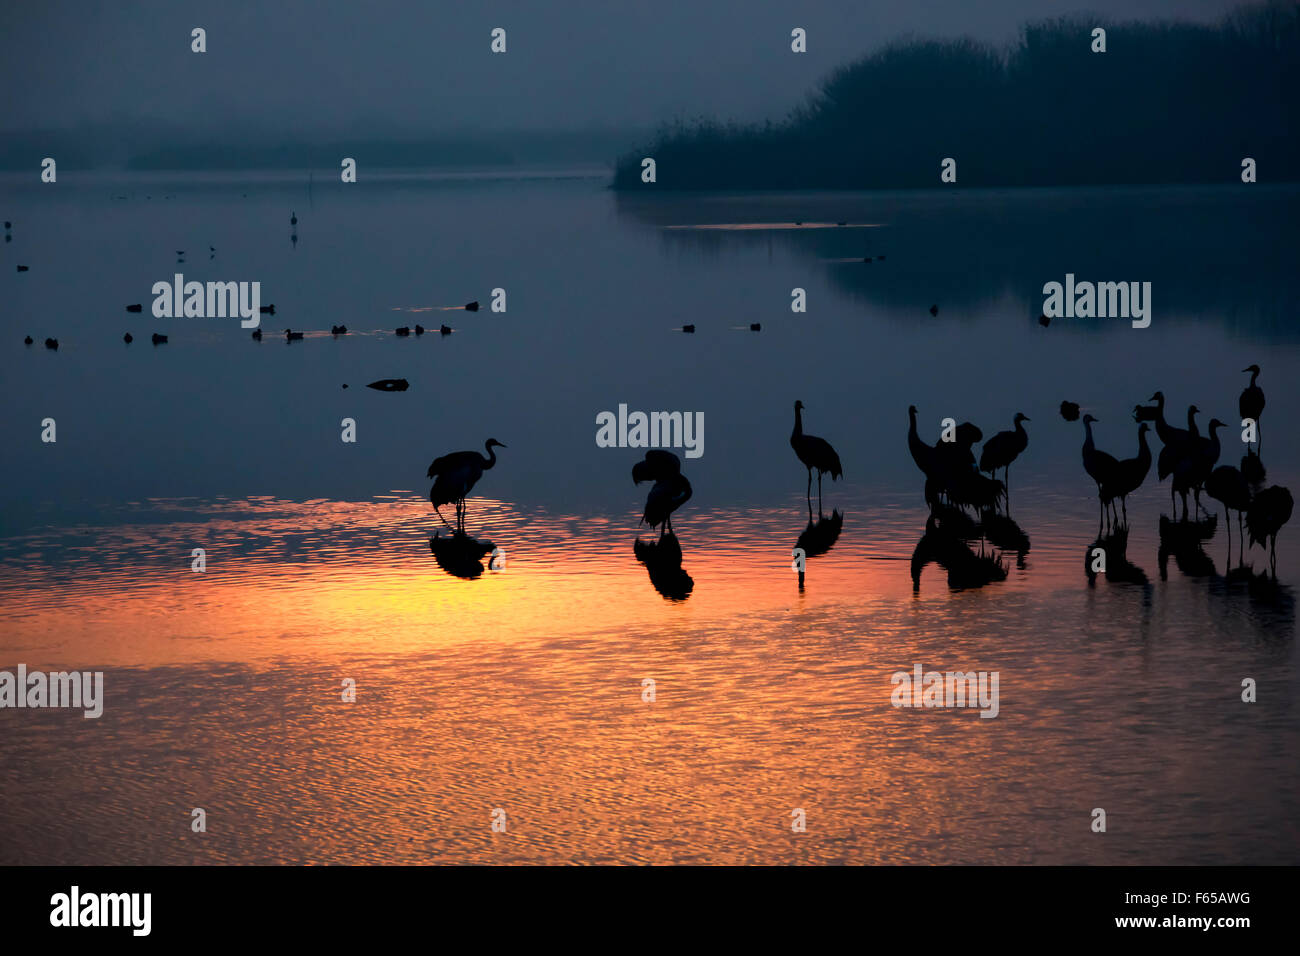 Common crane (Grus grus) Silhouetted at sun-set. Large migratory crane species that lives in wet meadows and marshland. Stock Photo